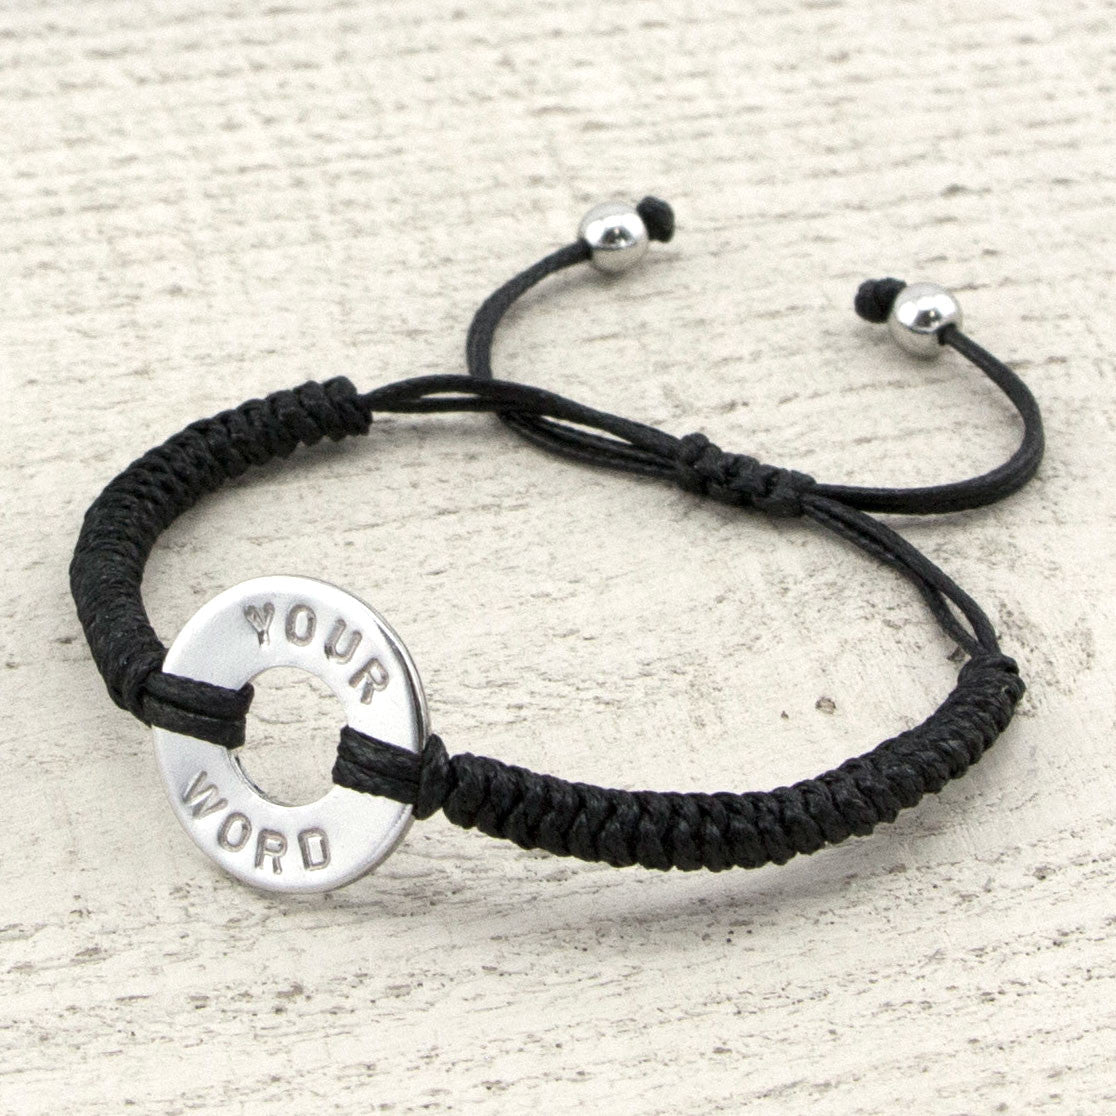 MyIntent Custom Round Bracelet Silver Token with Black String and stainless steel beads